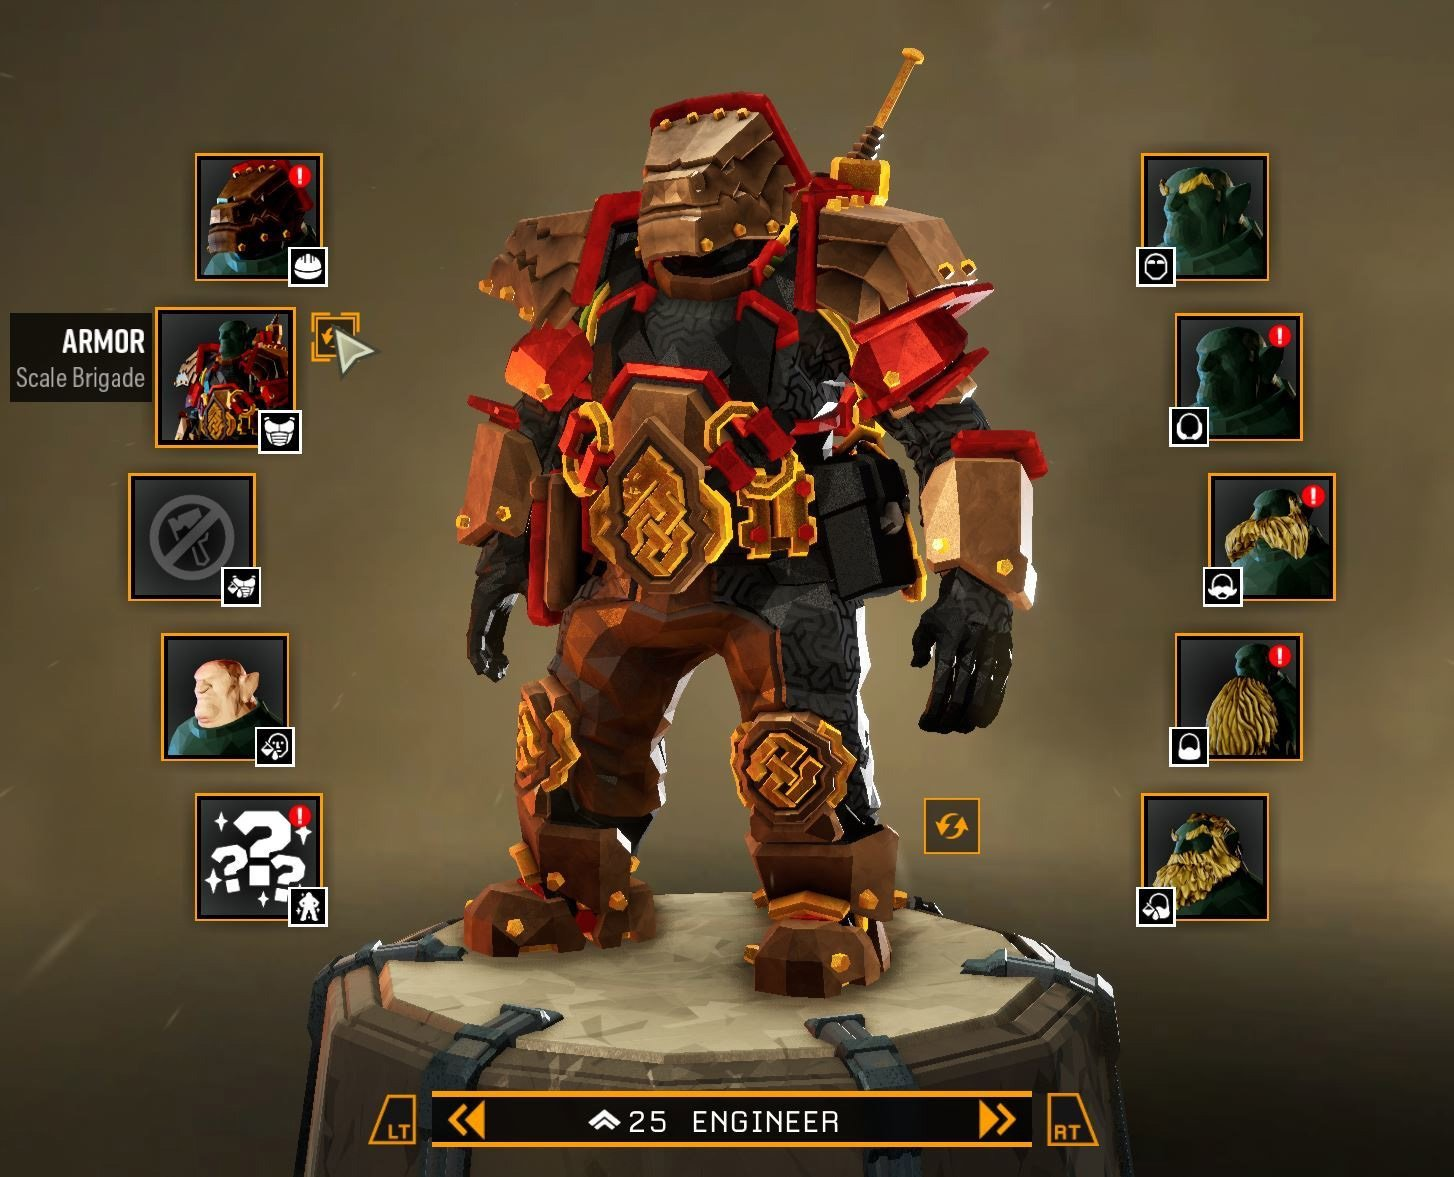 Everyone can unlock the Scale Brigade Armor until March 14, after which point it's limited to Rank 100 players and up.